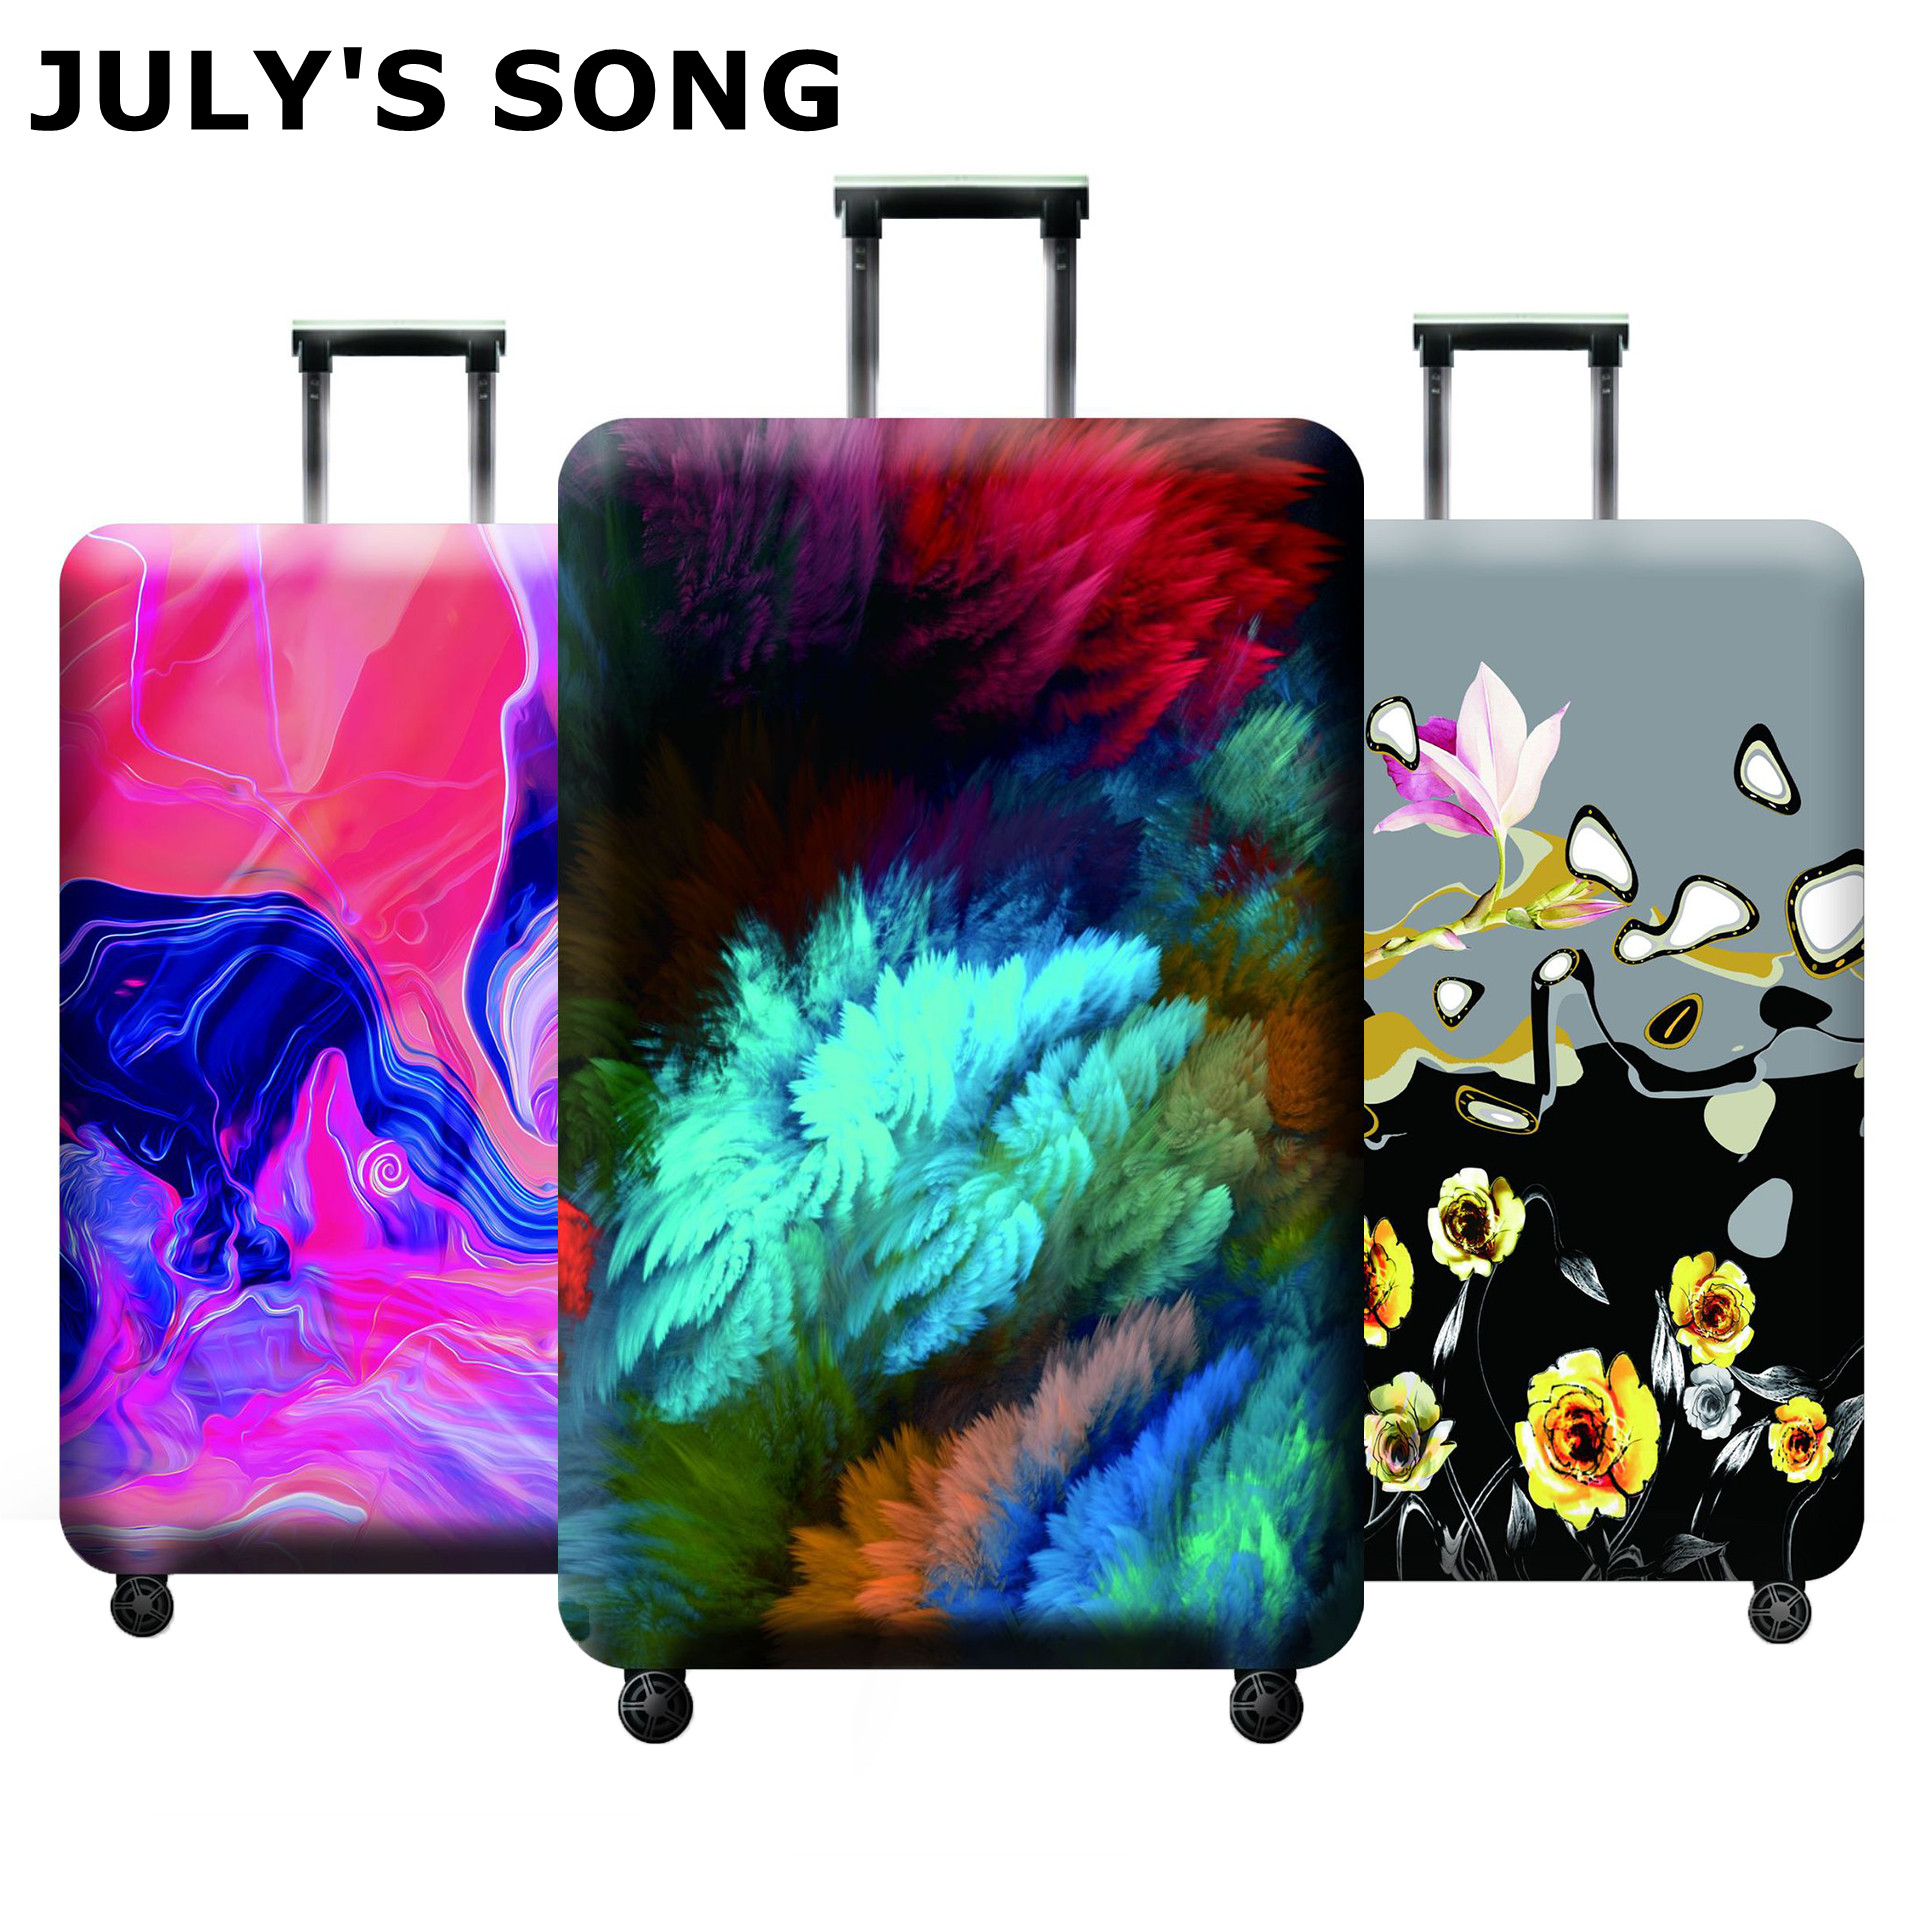 JULY'S SONG Luggage Protector Cover Suitcases Covers Waterproof Luggage Covers Accessory Bags Travel Trolley Case Cover